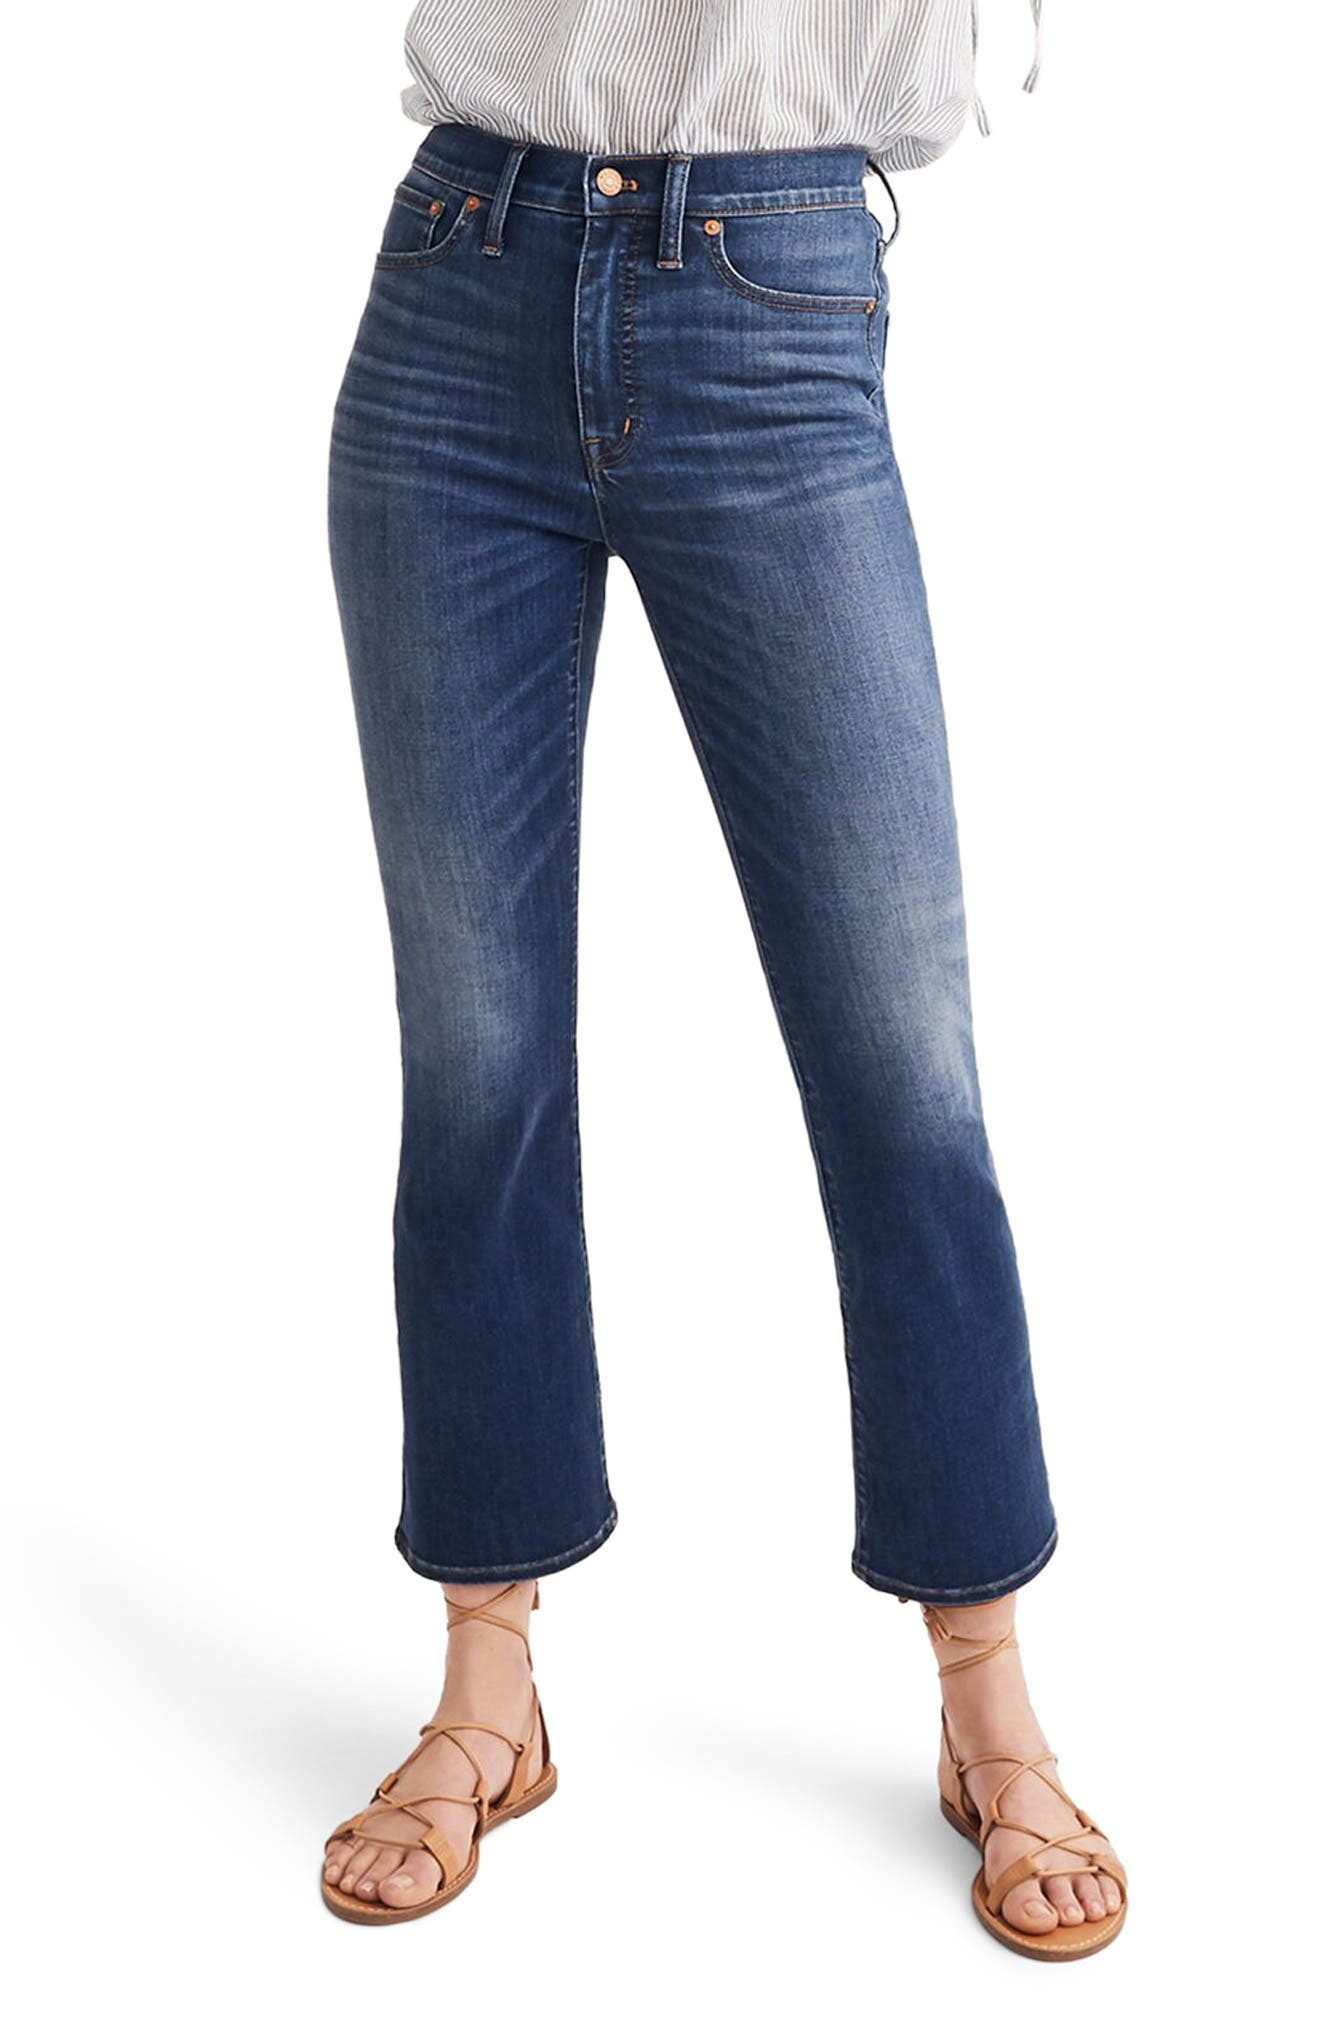 Madewell Cali Demi-Boot Jeans (Danny) (Regular & Plus Size)